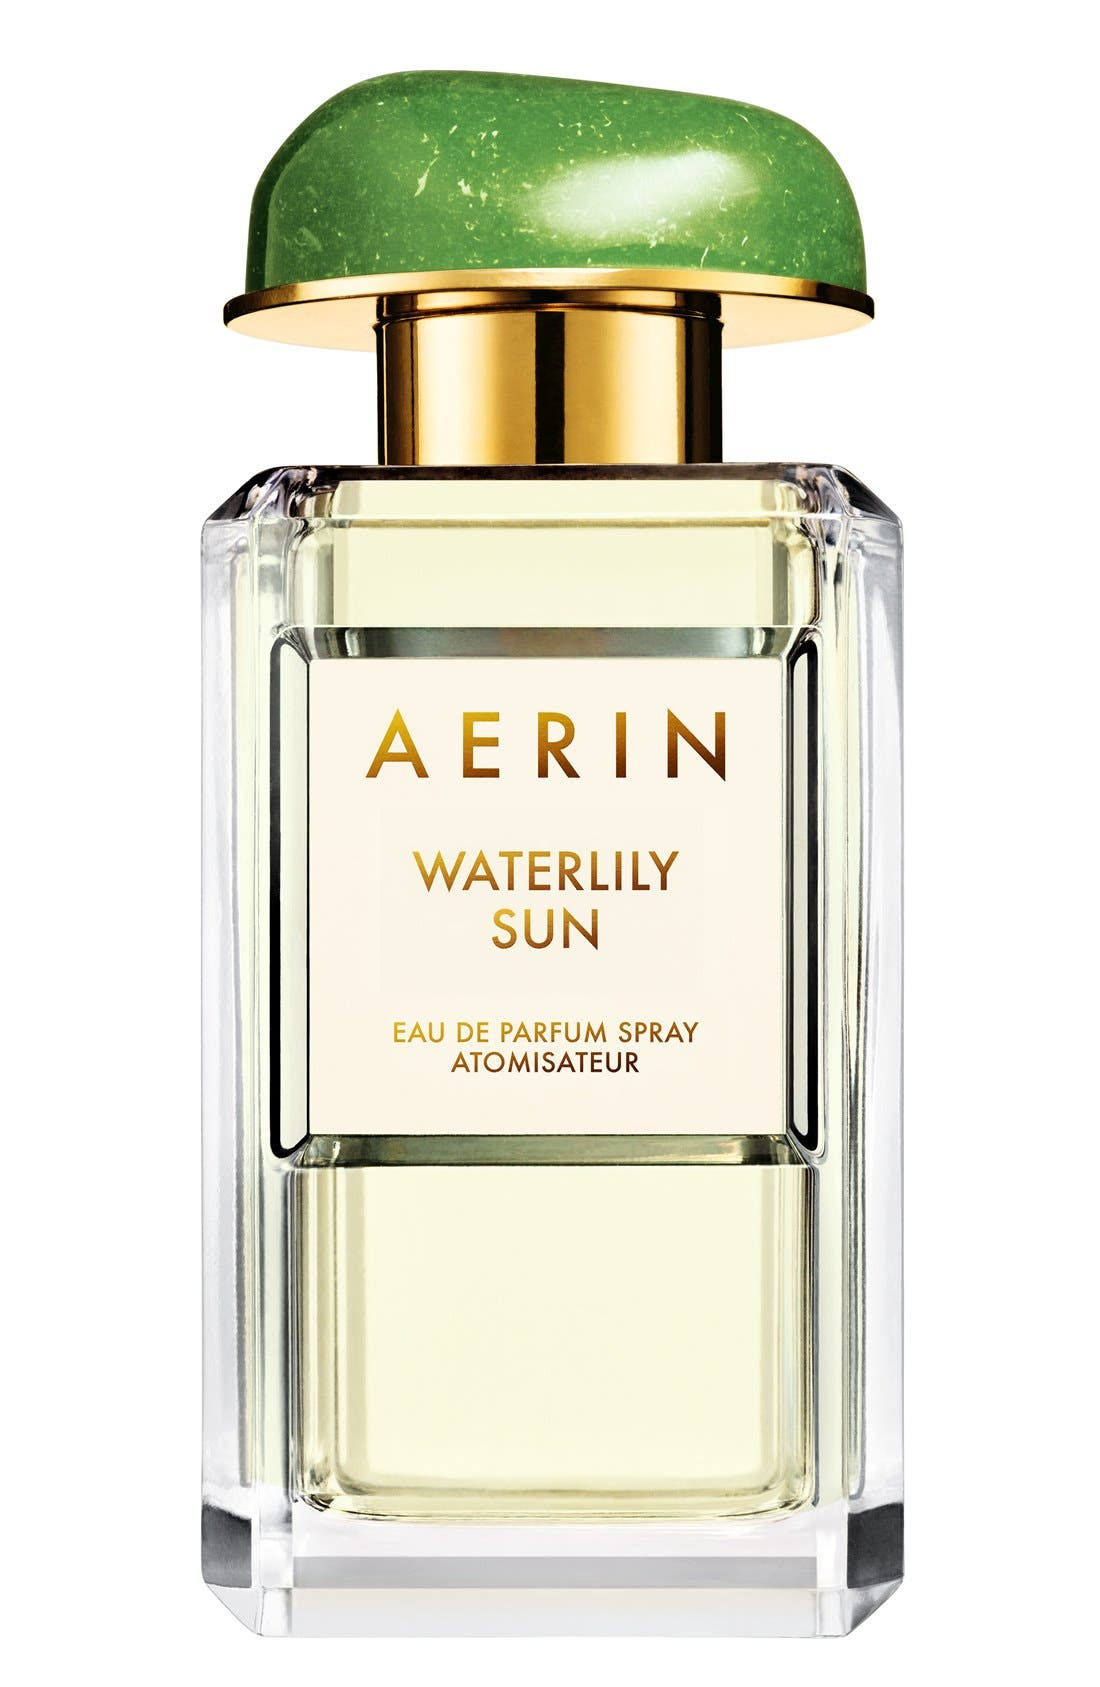 AERIN Beauty Waterlily Sun Eau de Parfum